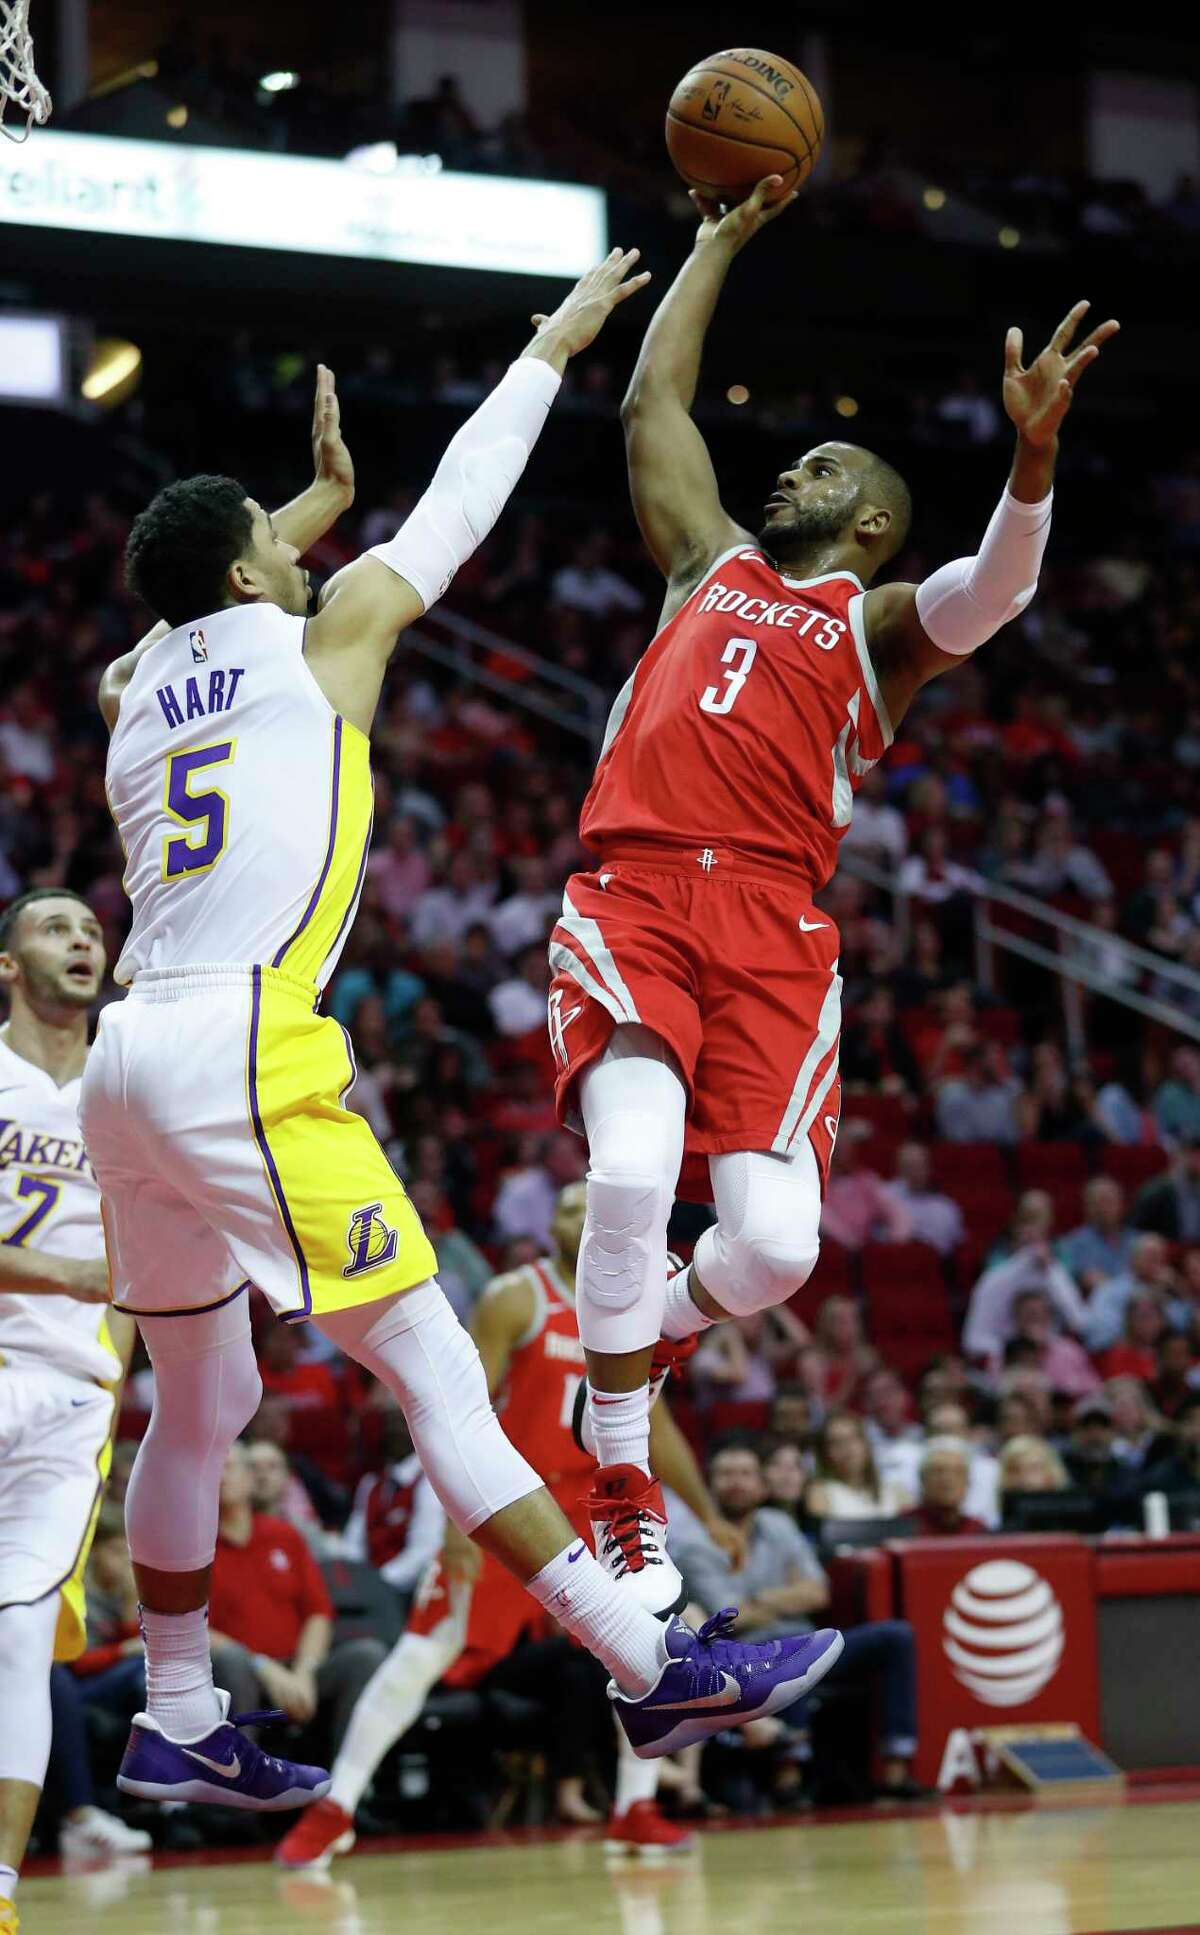 Houston Rockets guard Chris Paul (3) goes up for the shot against Los Angeles Lakers guard Josh Hart (5) in the first half of an NBA basketball game at Toyota Center, Wednesday, Dec. 20, 2017, in Houston.